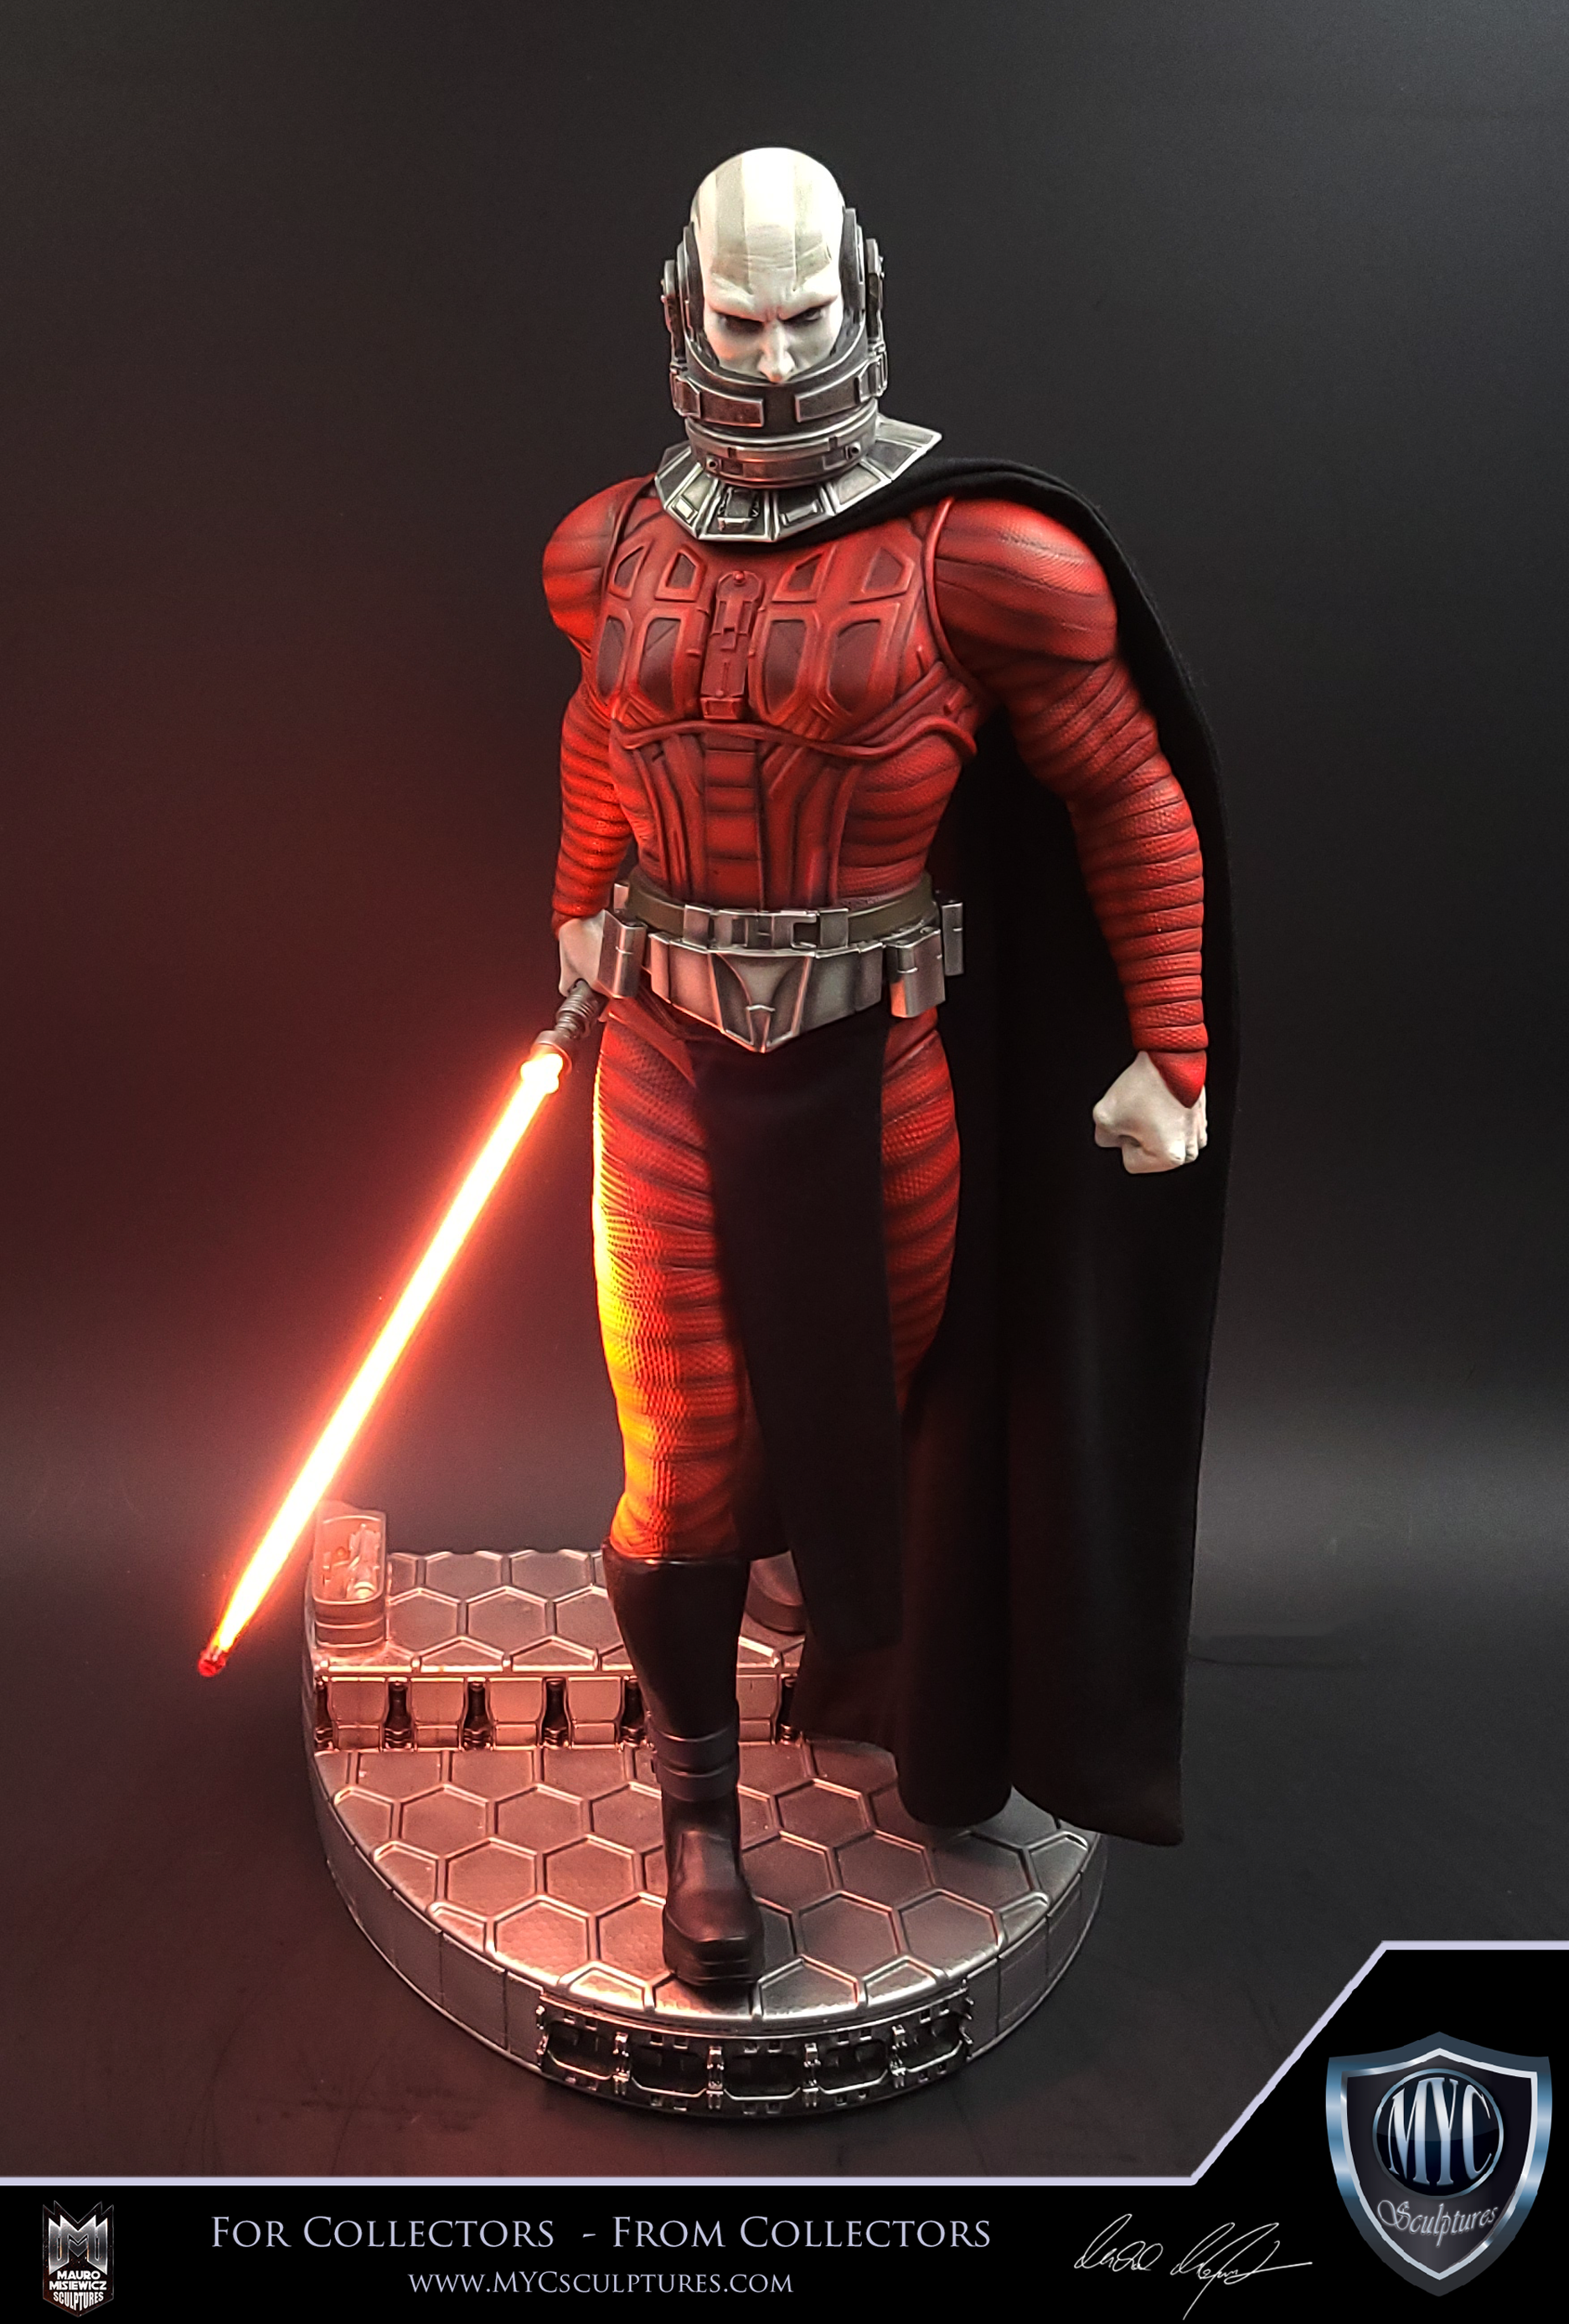 Darth_Malak_MYC_Sculptures_Statue_01